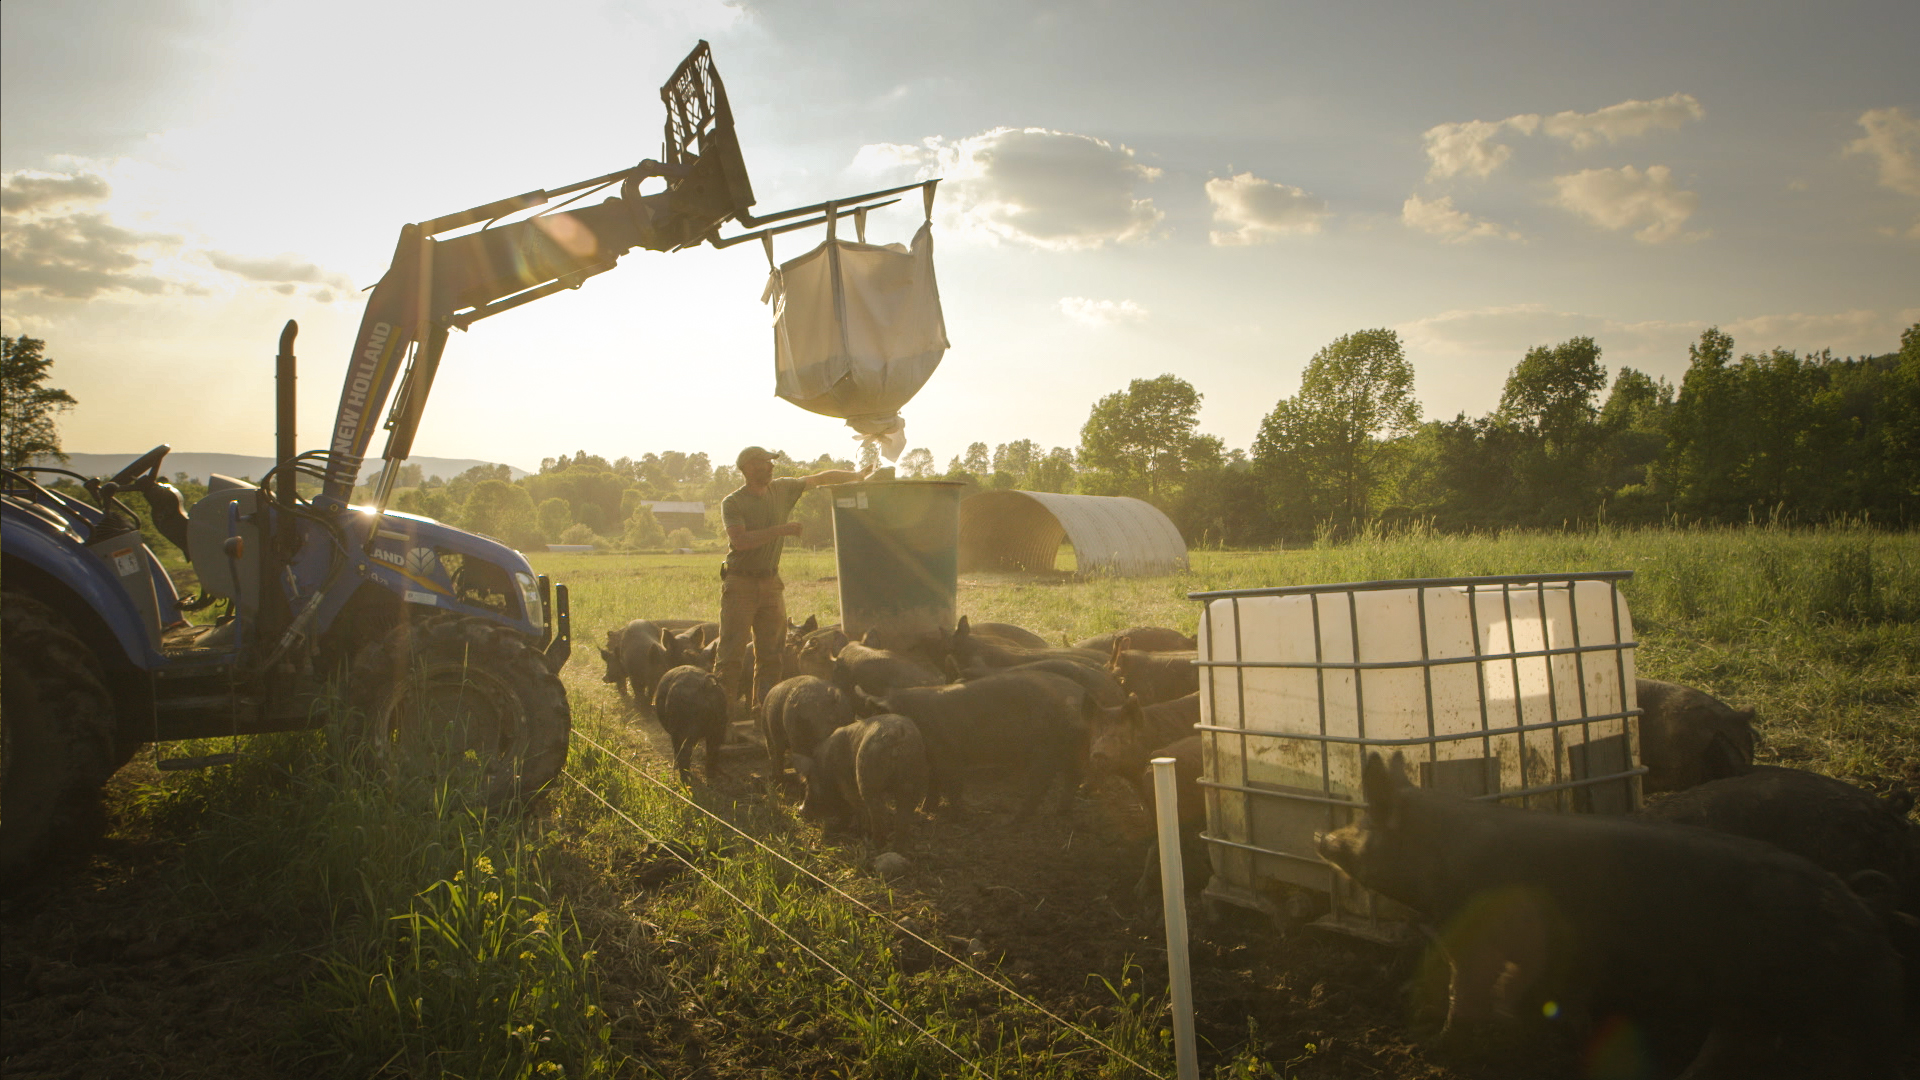 In one of many sweeping landscape shots, farmer Bob Comis feeds his herd.